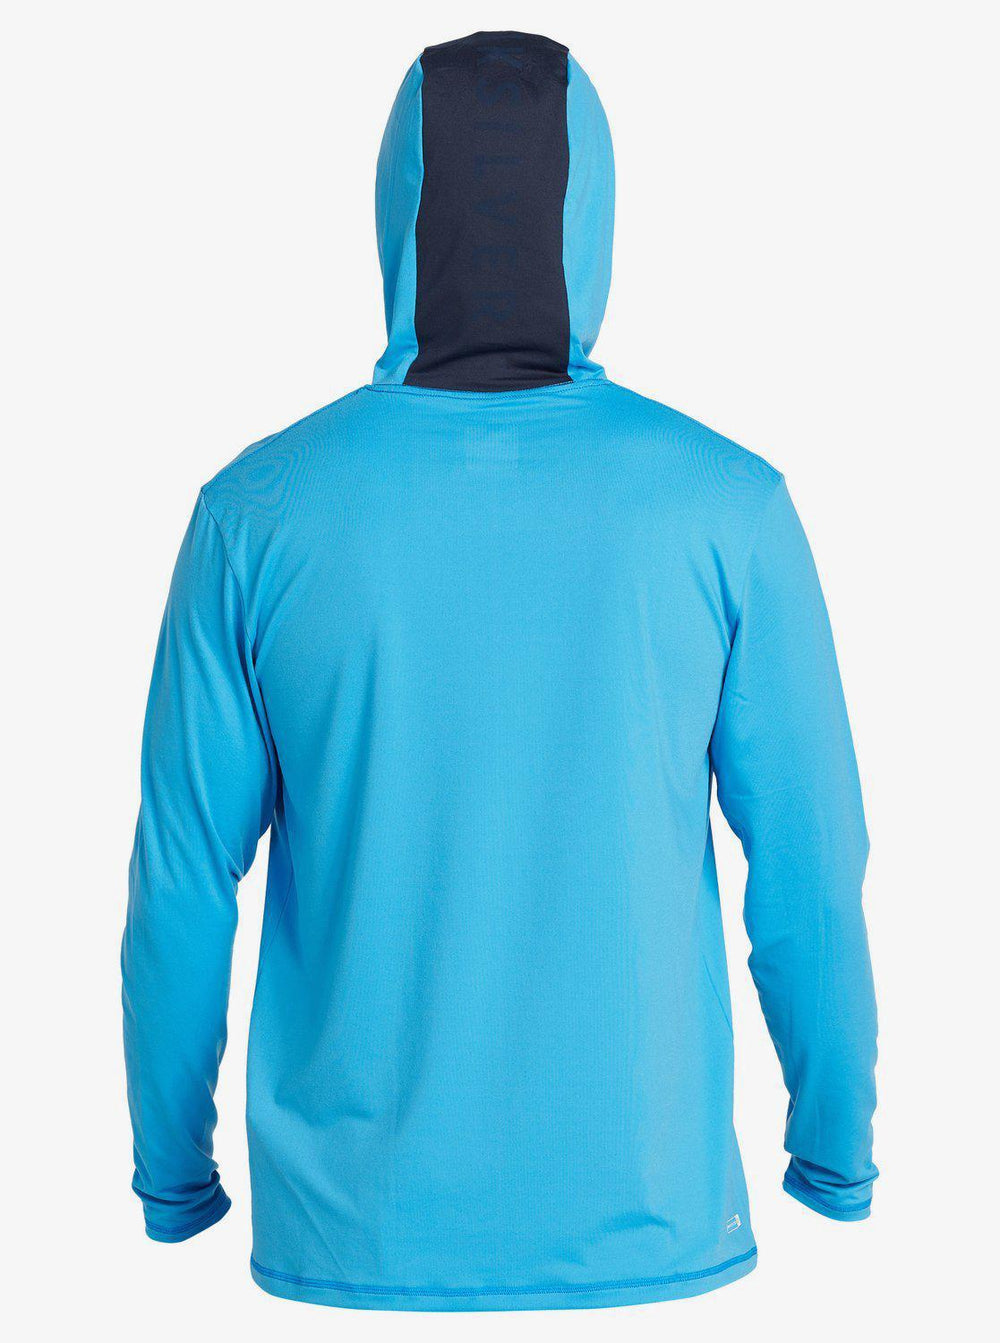 Dredge Hooded Long Sleeve UPF 50 Rash Vest